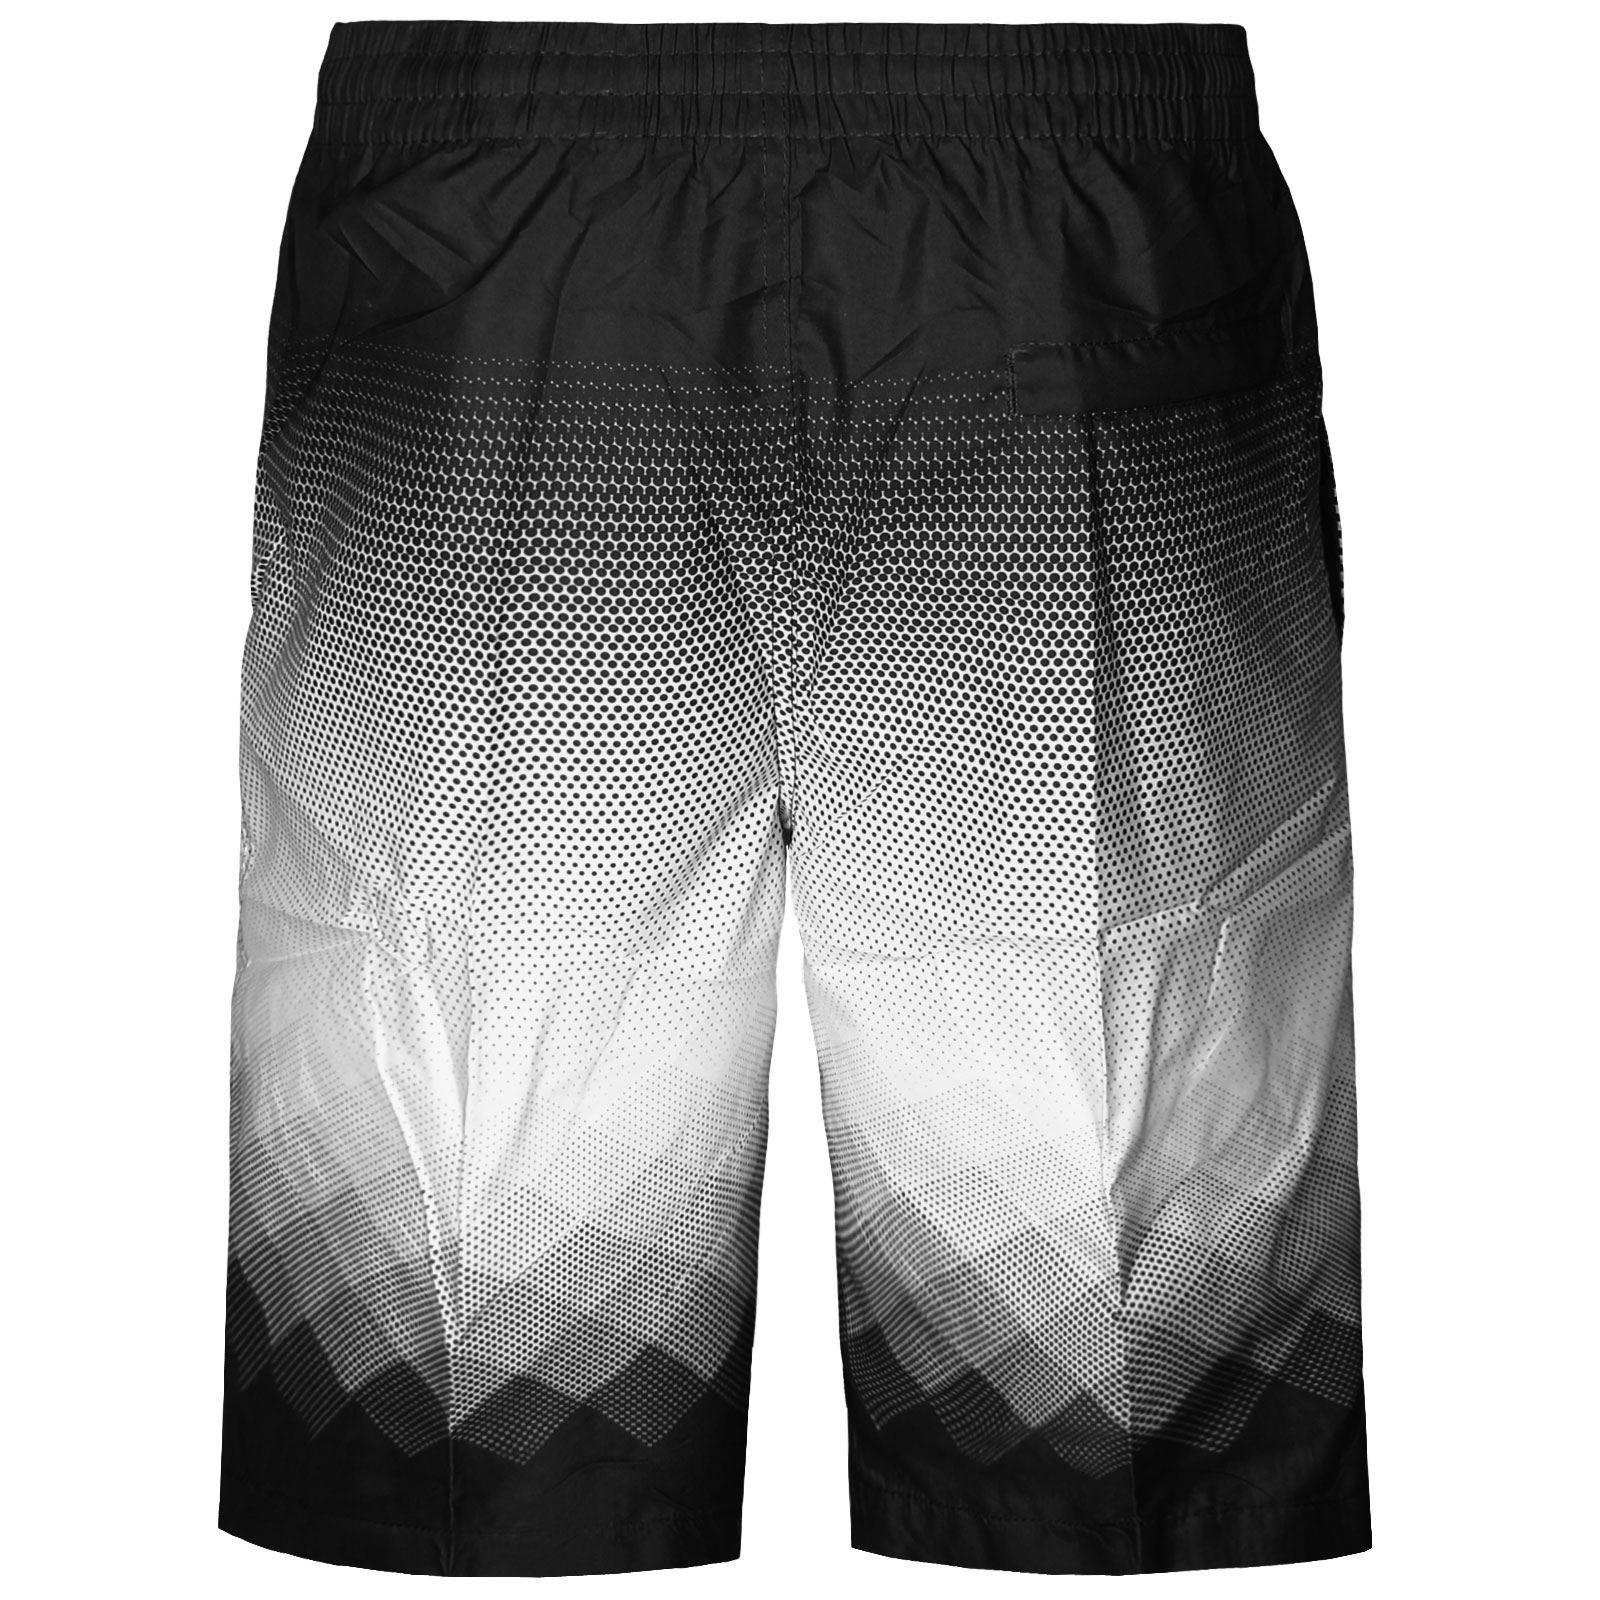 The lining in board shorts is missing for good reason, but the lack of mesh lining also has proven slightly problematic since board shorts were first introduced in Without the mesh barrier, some men find the shorts' inner seam to be irritating.